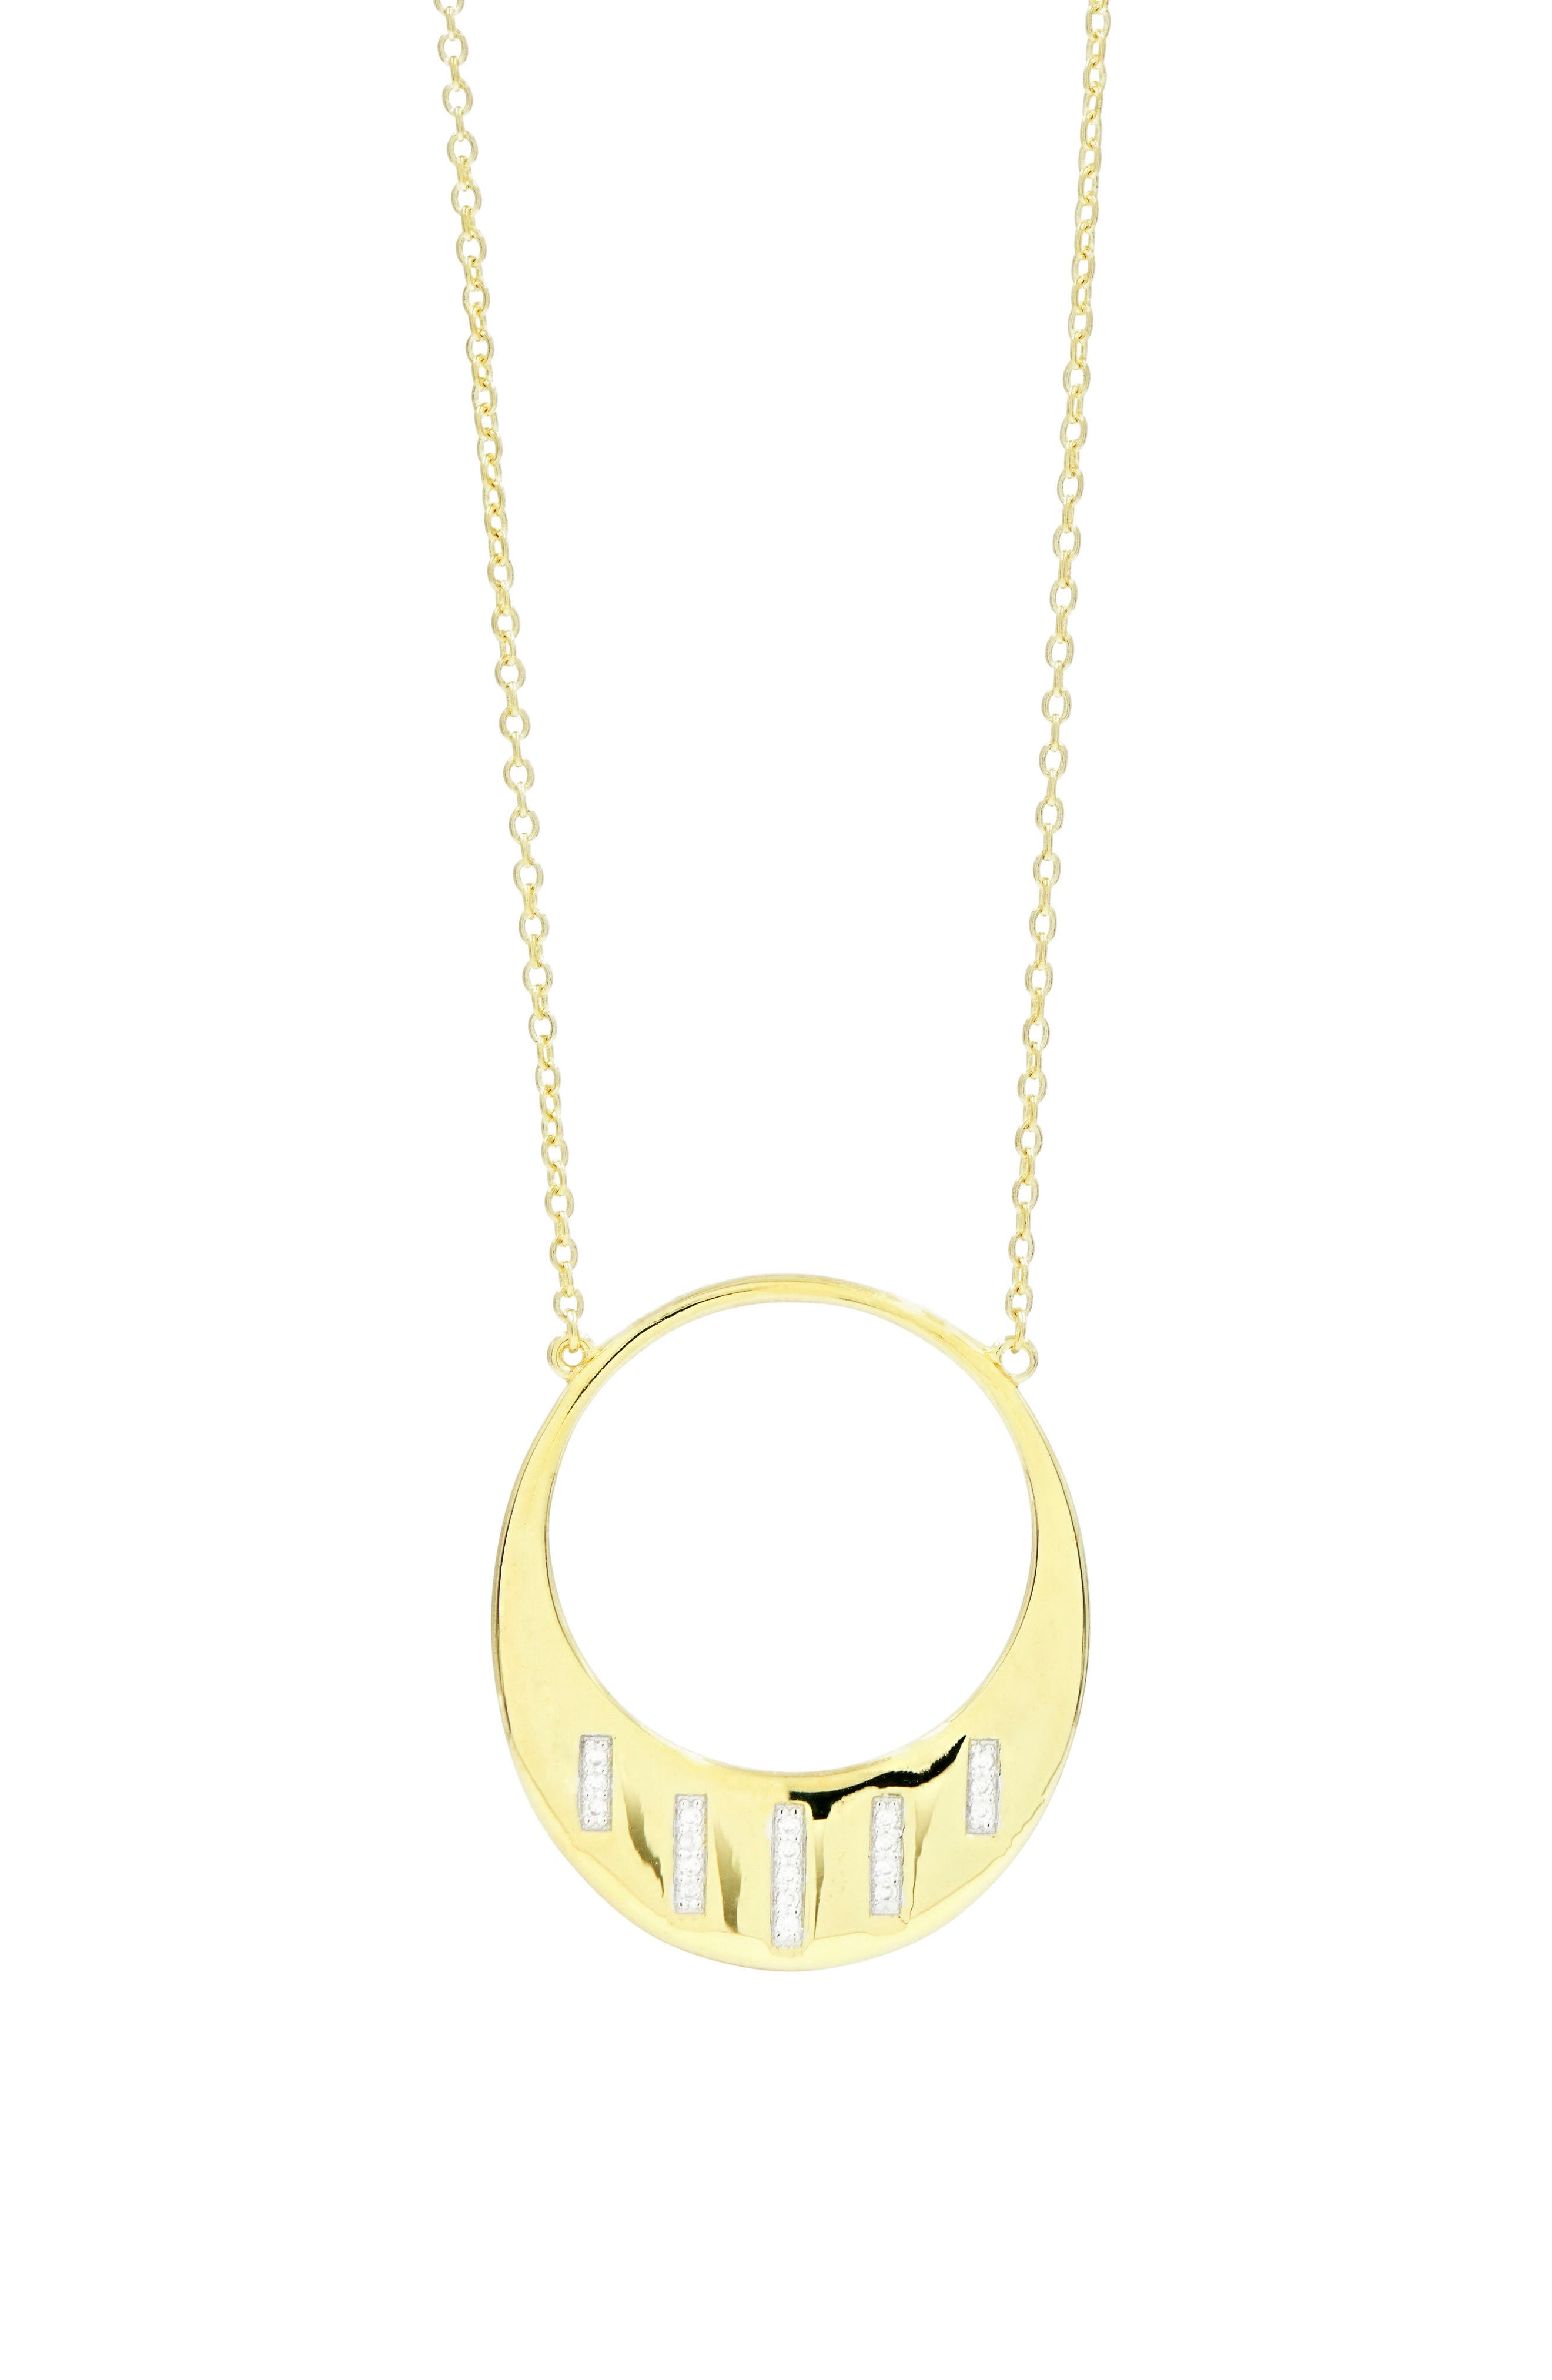 Radiance Open Pendant Necklace,                         Main,                         color, Silver/ Gold